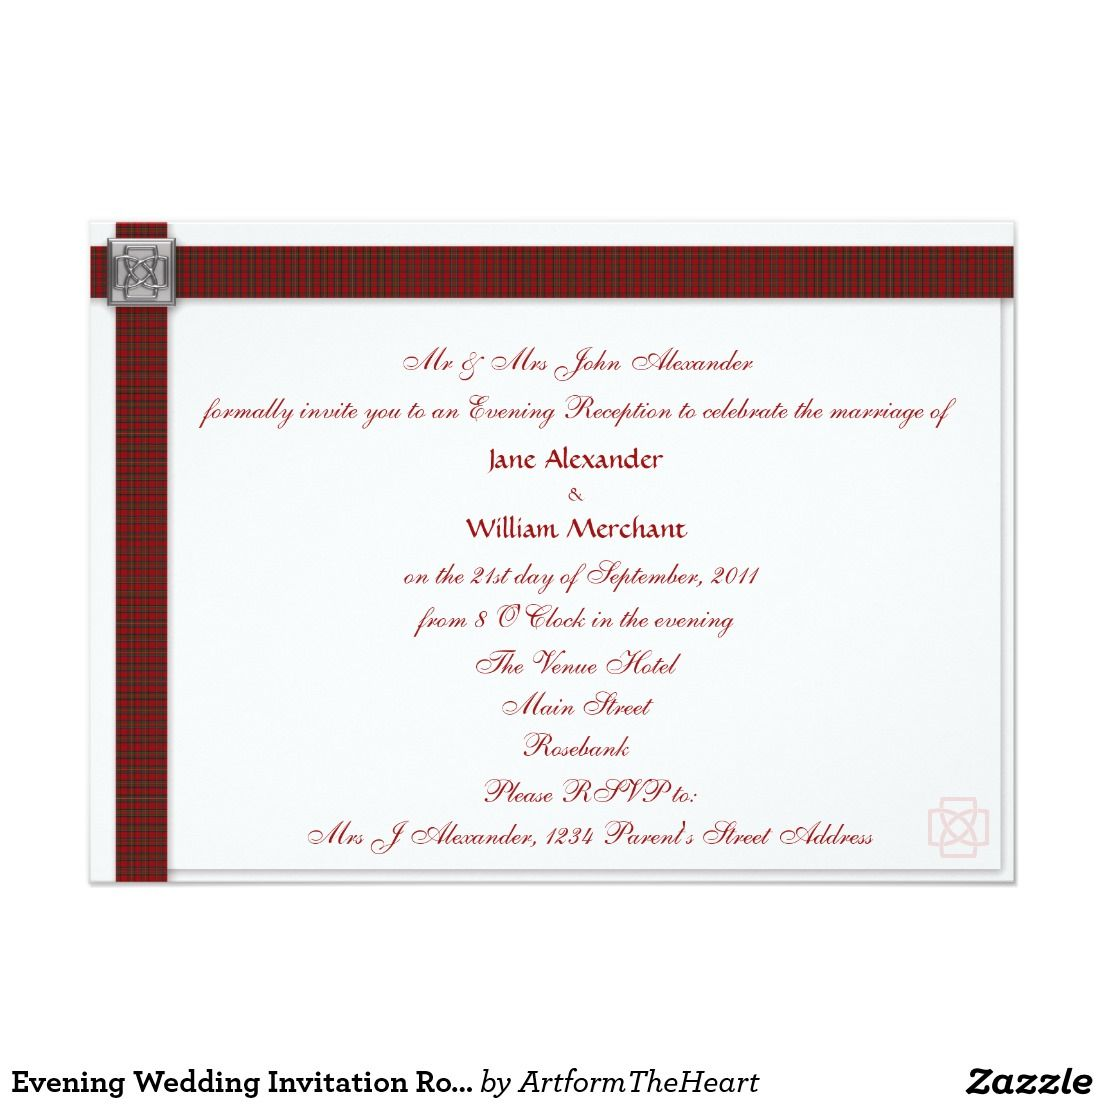 Evening Wedding Invitation Royal Stewart Tartan Tartan Wedding